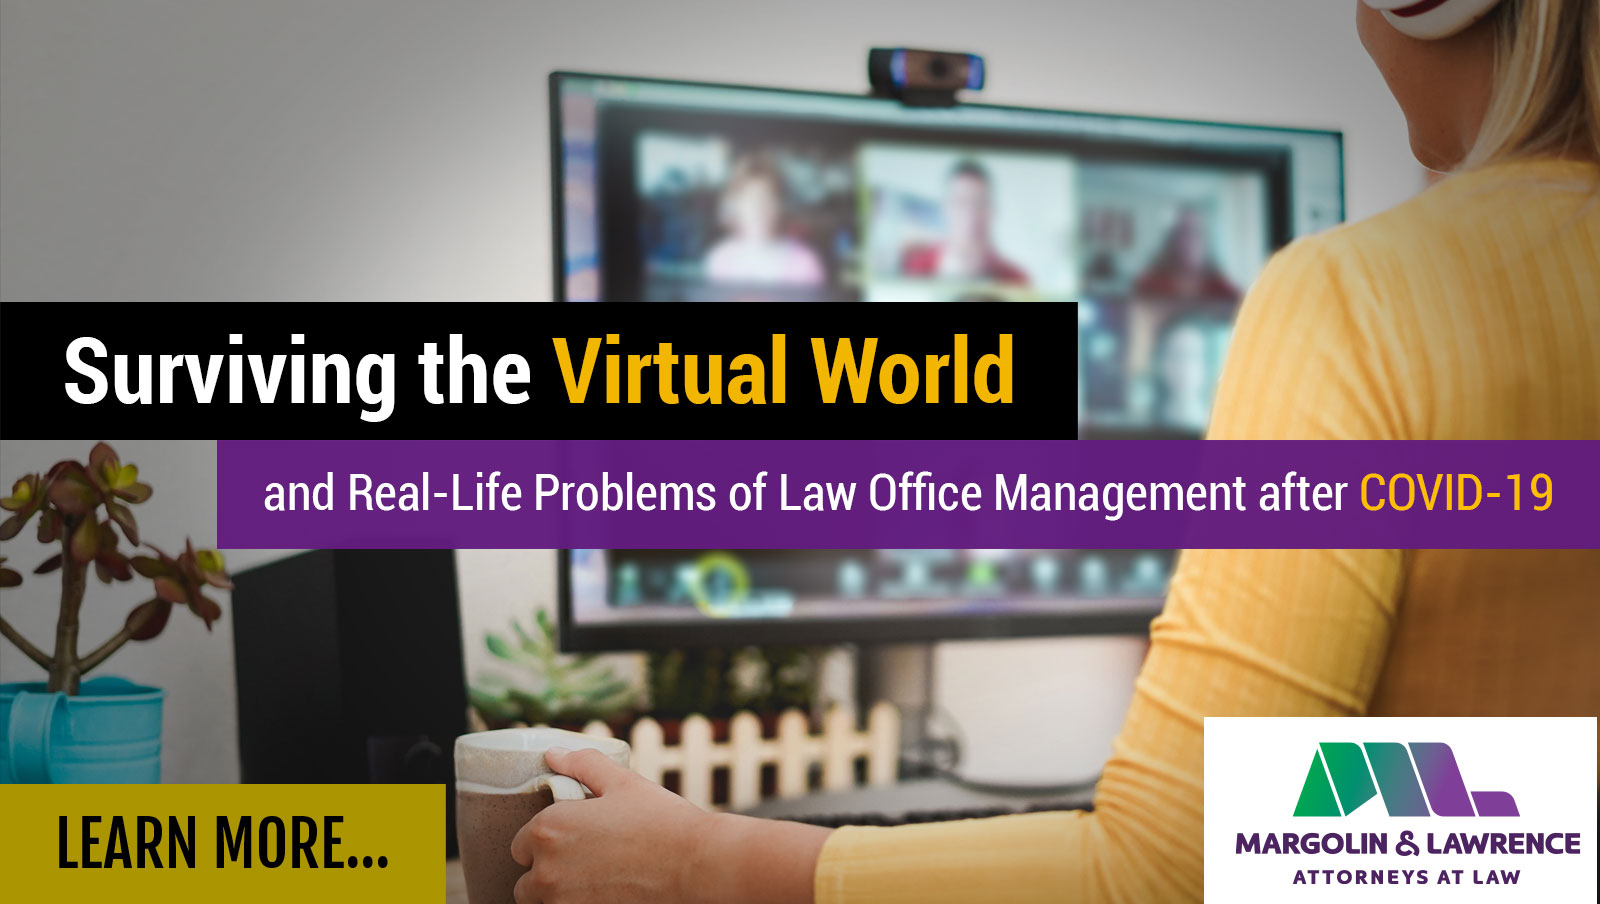 Surviving the Virtual World and Real-Life Problems of Law Office Management after COVID-19